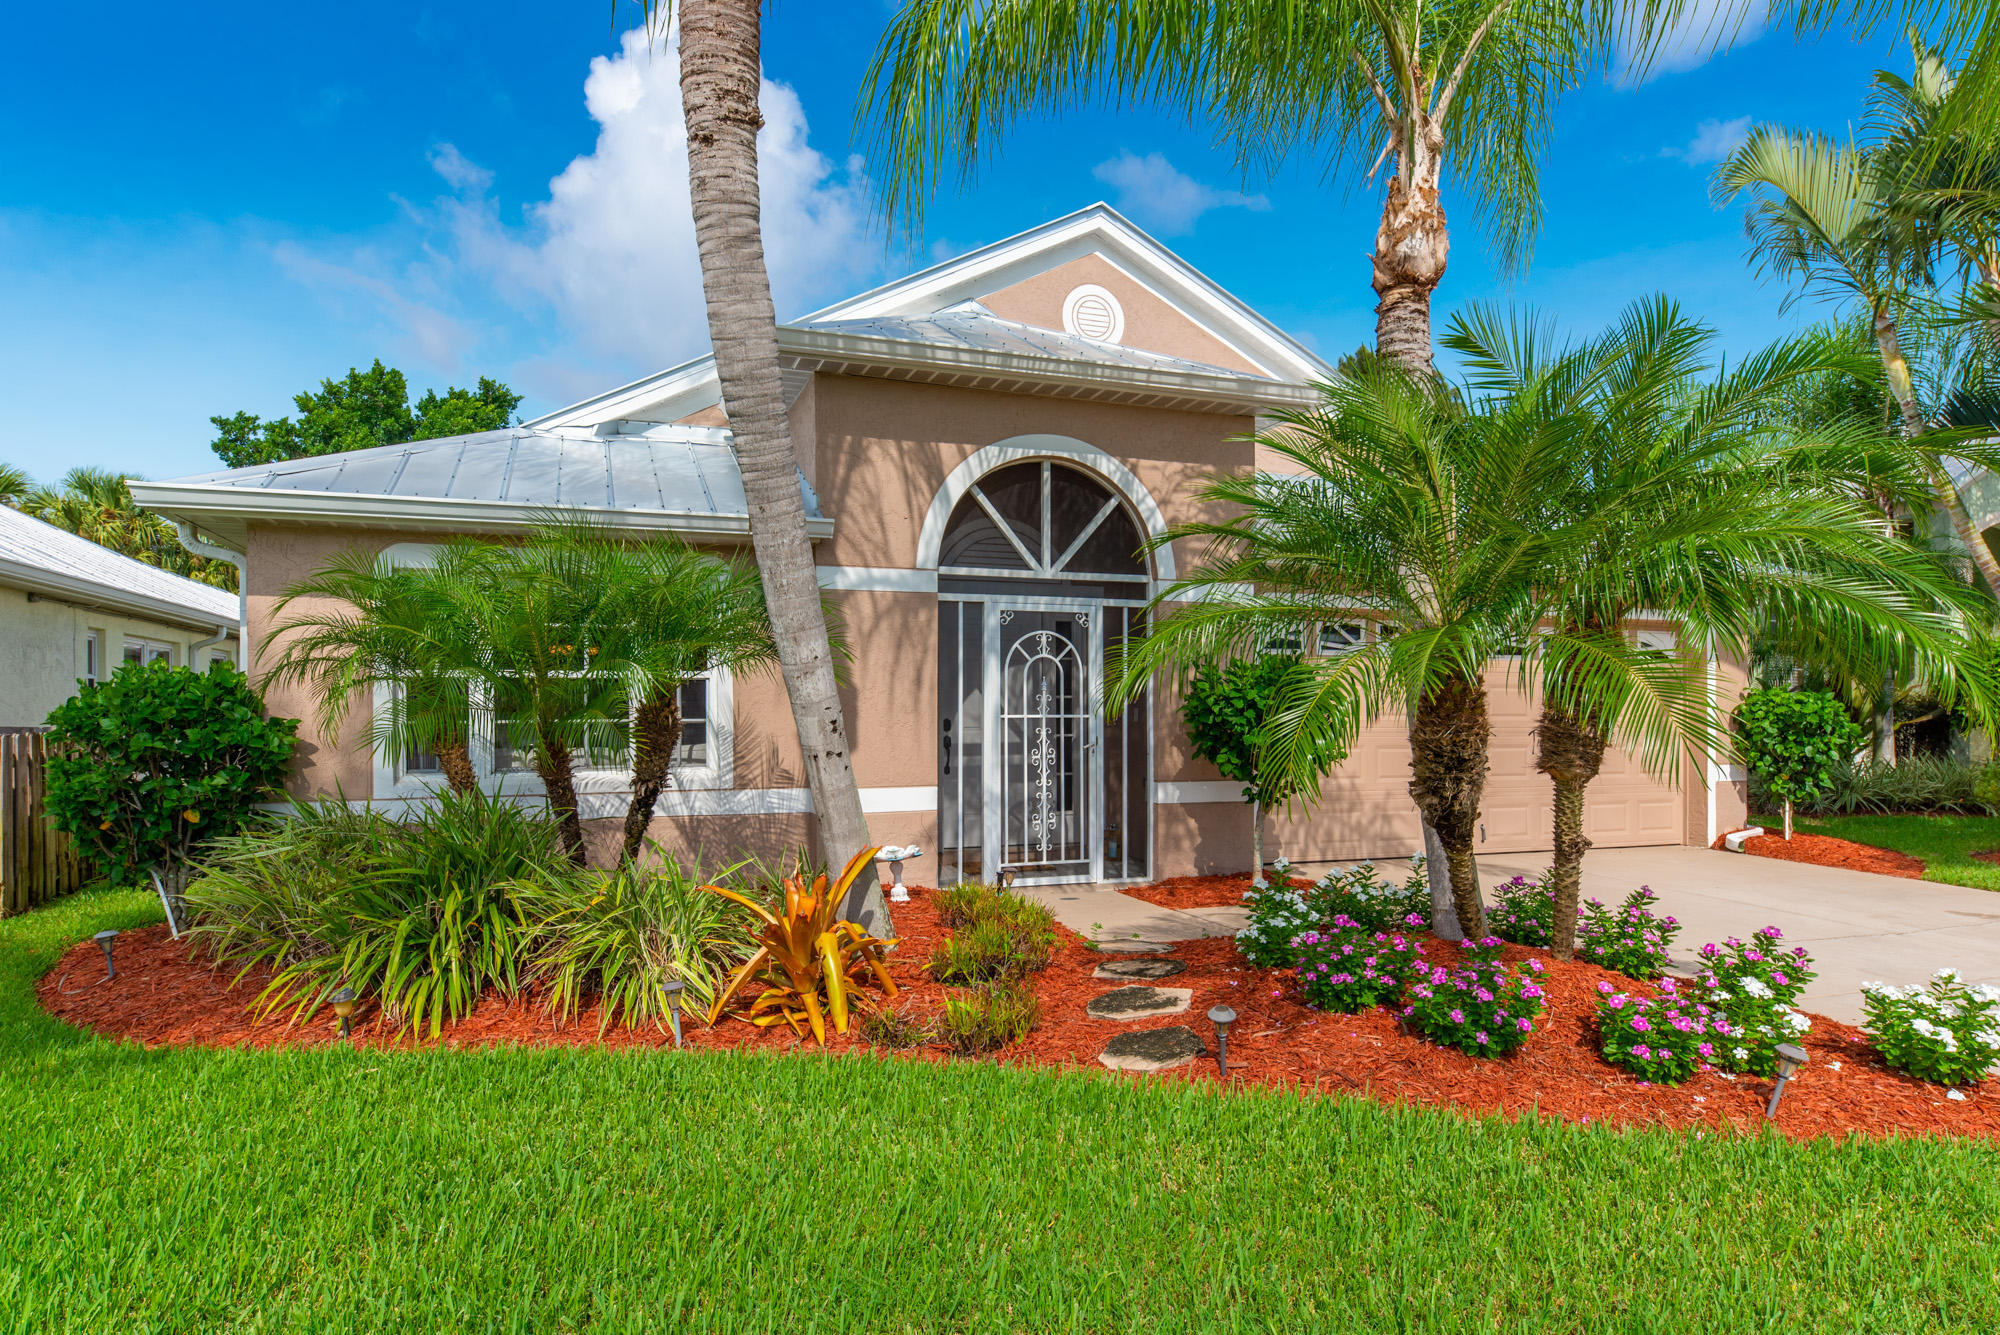 Home for sale in Windemere Reserve Jensen Beach Florida